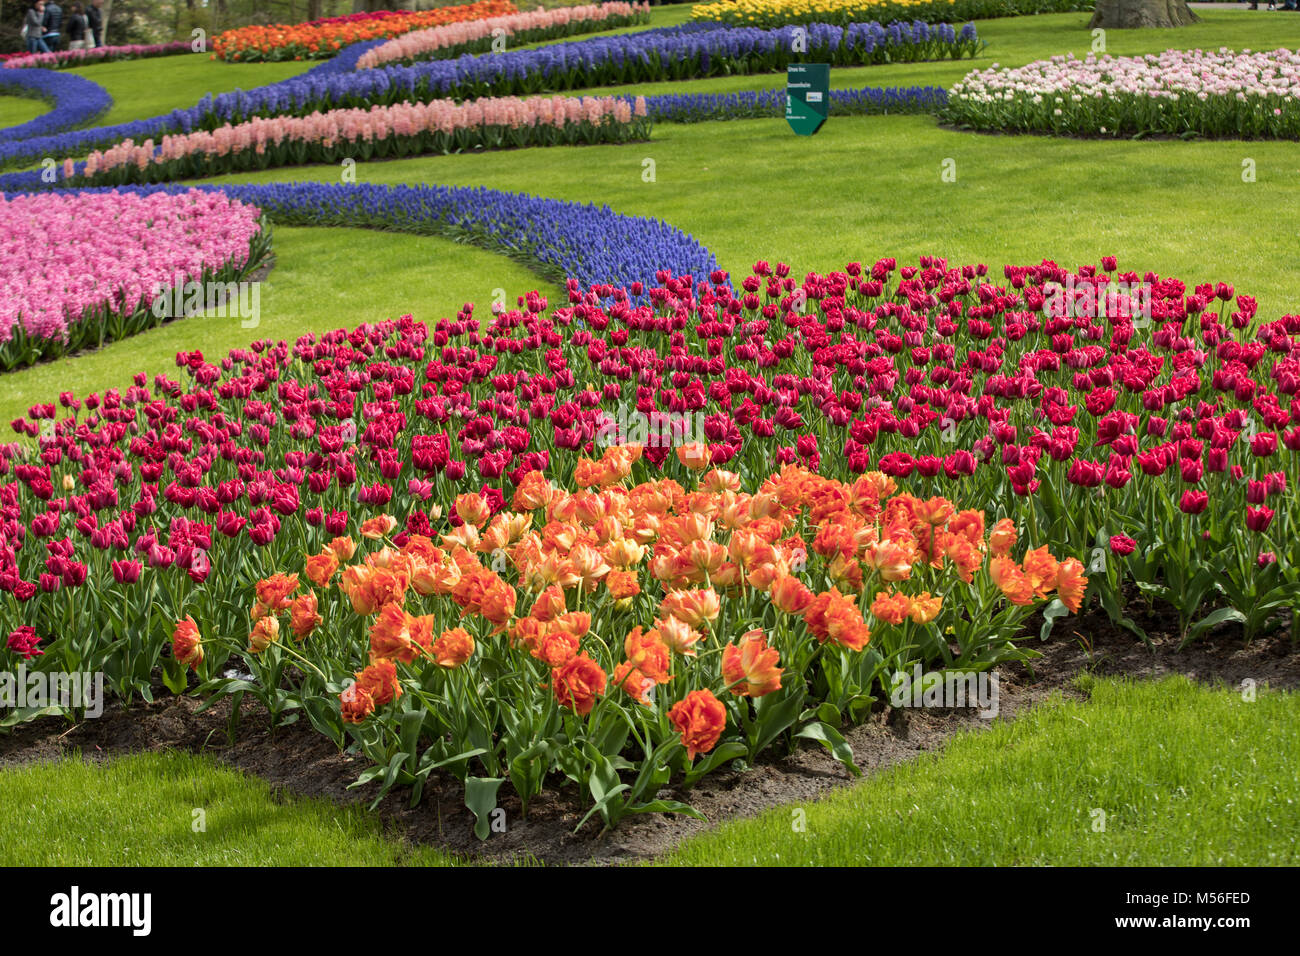 Colorful flowers in the Keukenhof Garden in Lisse, Holland, Netherlands. - Stock Image